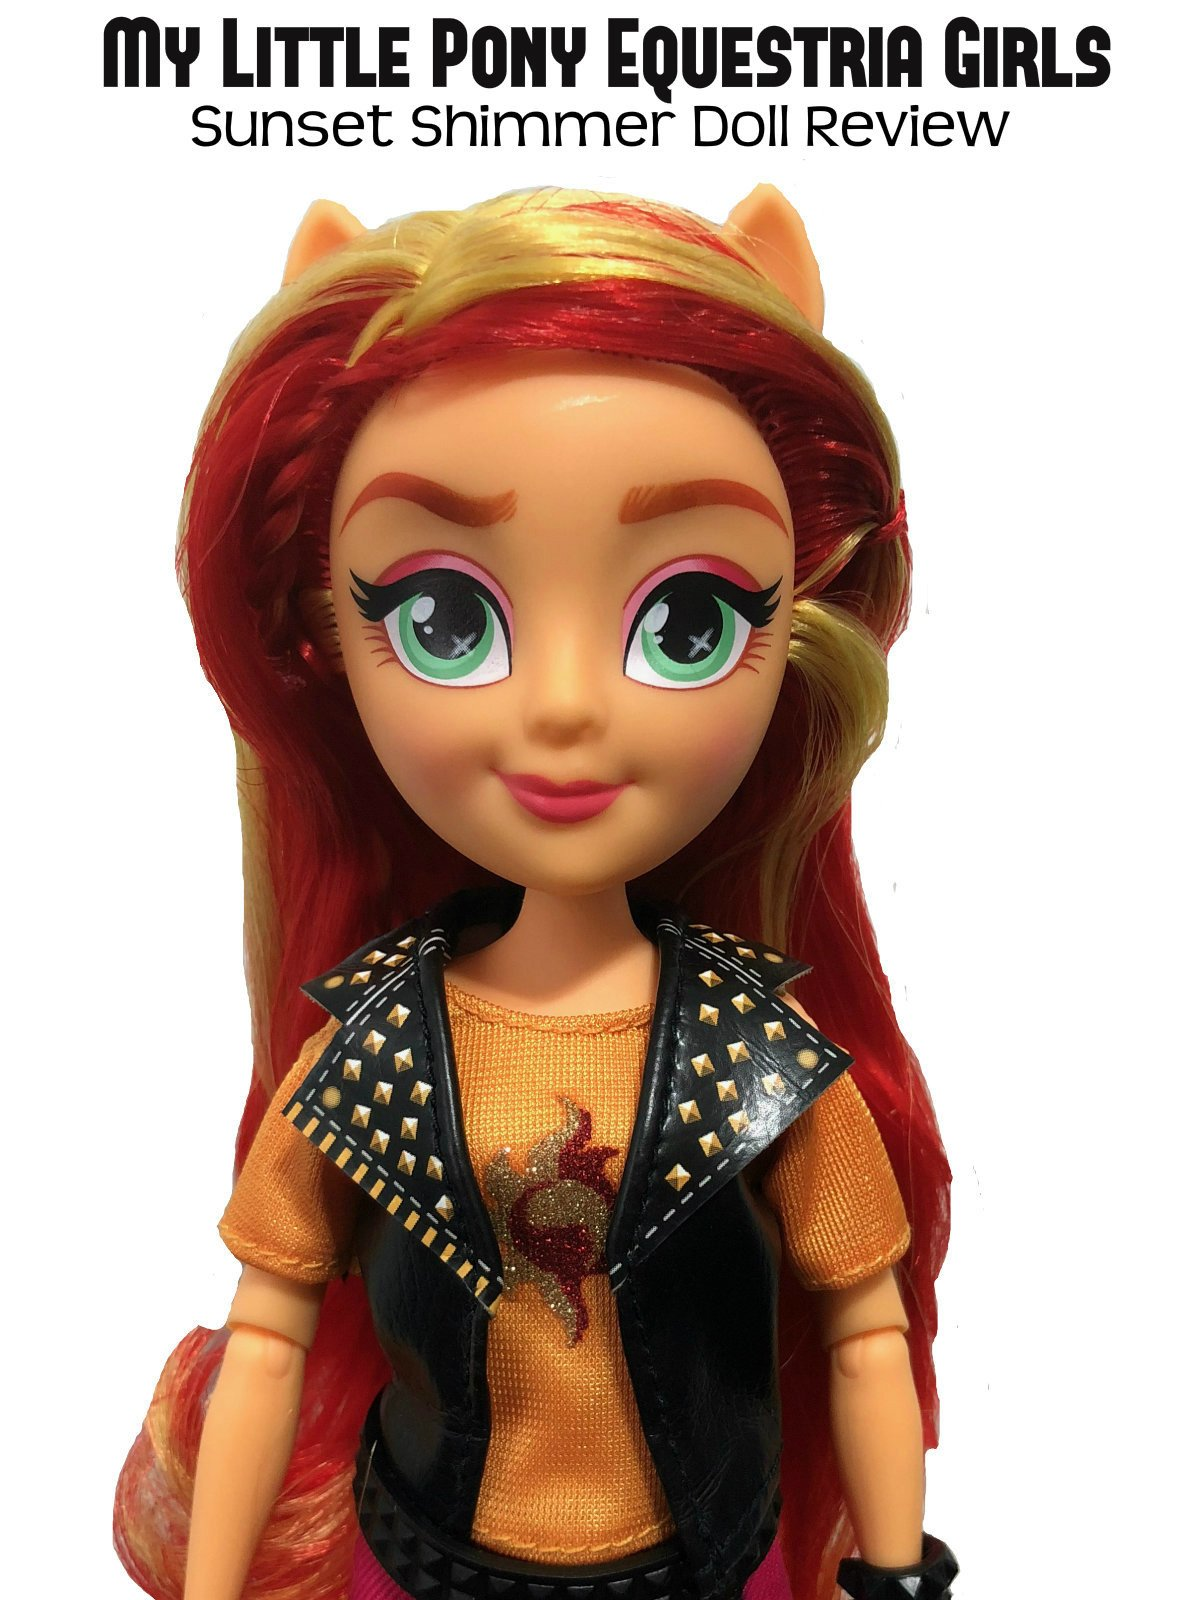 Review: My Little Pony Equestria Girls Sunset Shimmer Doll Review on Amazon Prime Video UK